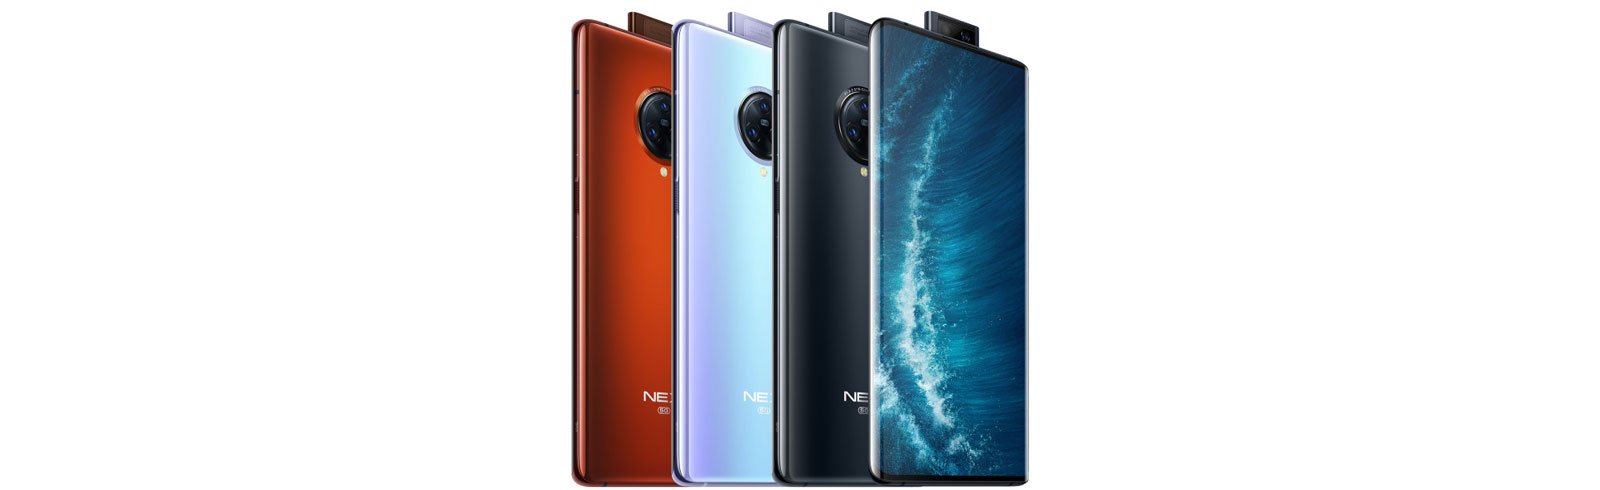 Vivo NEX 3s 5G specifications, price, availability